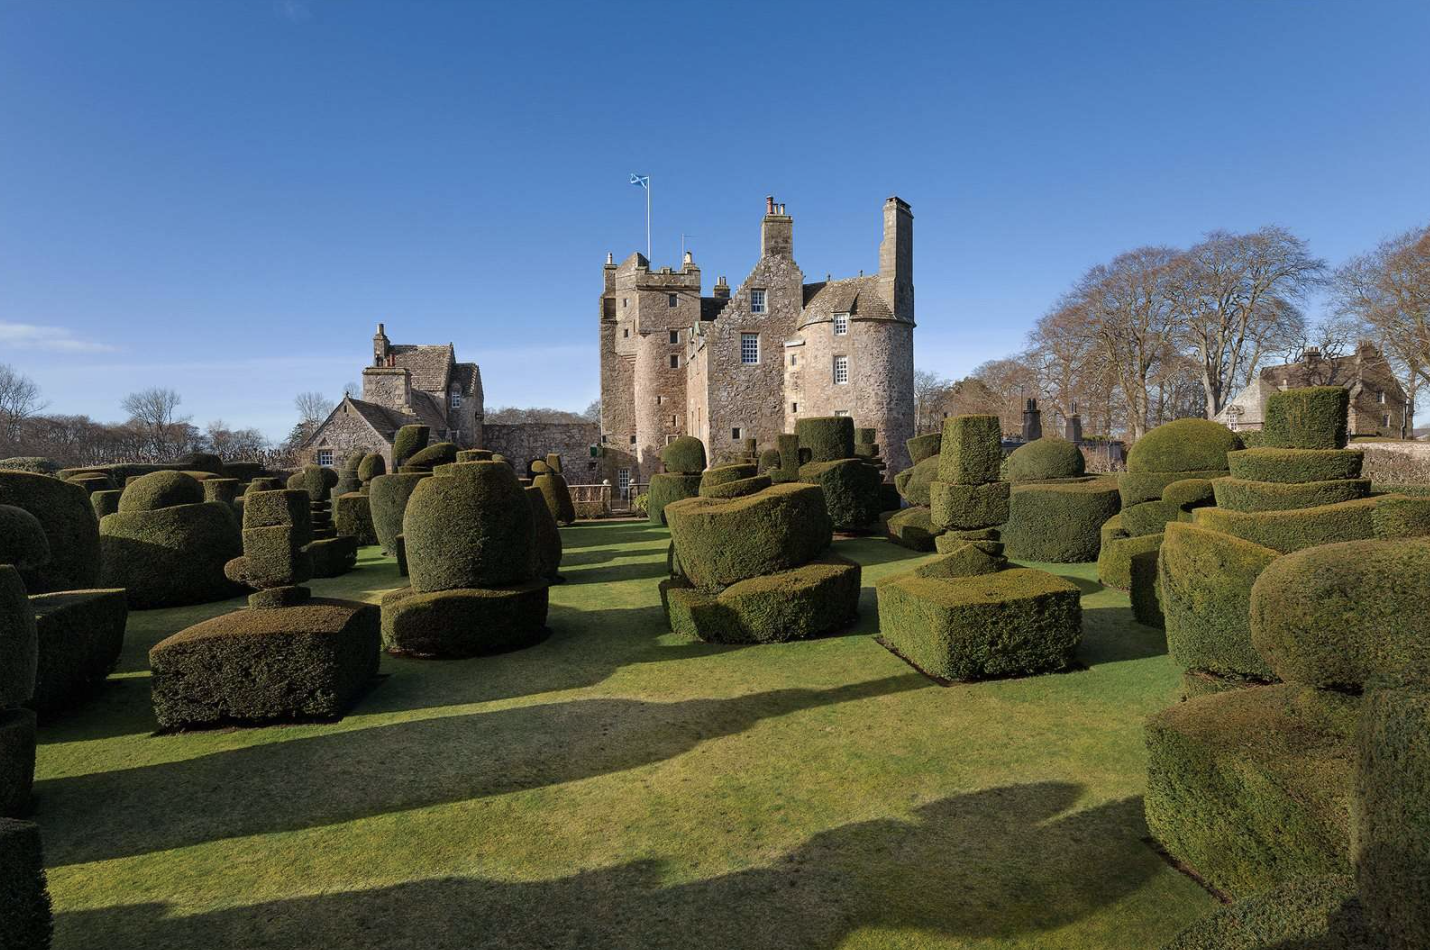 This ancient haunted castle in Scotland is now for sale